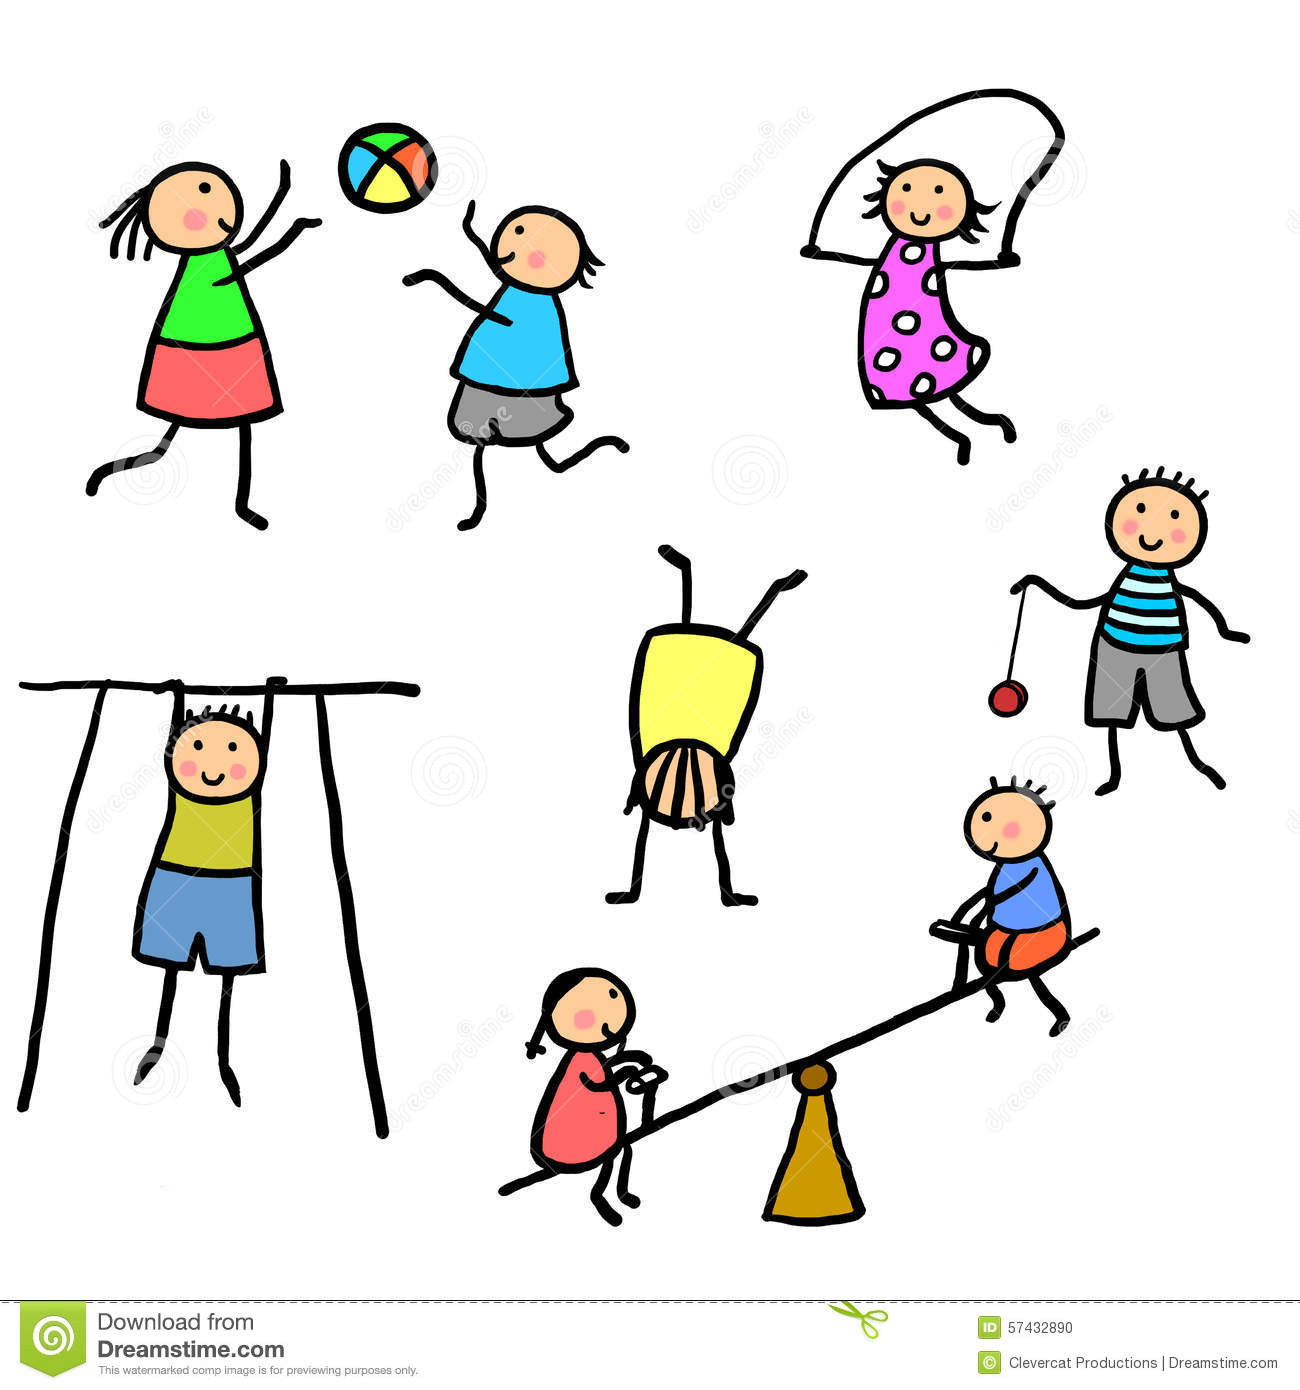 kids exercising and playing illustration stock photo - Exercise Pictures For Kids